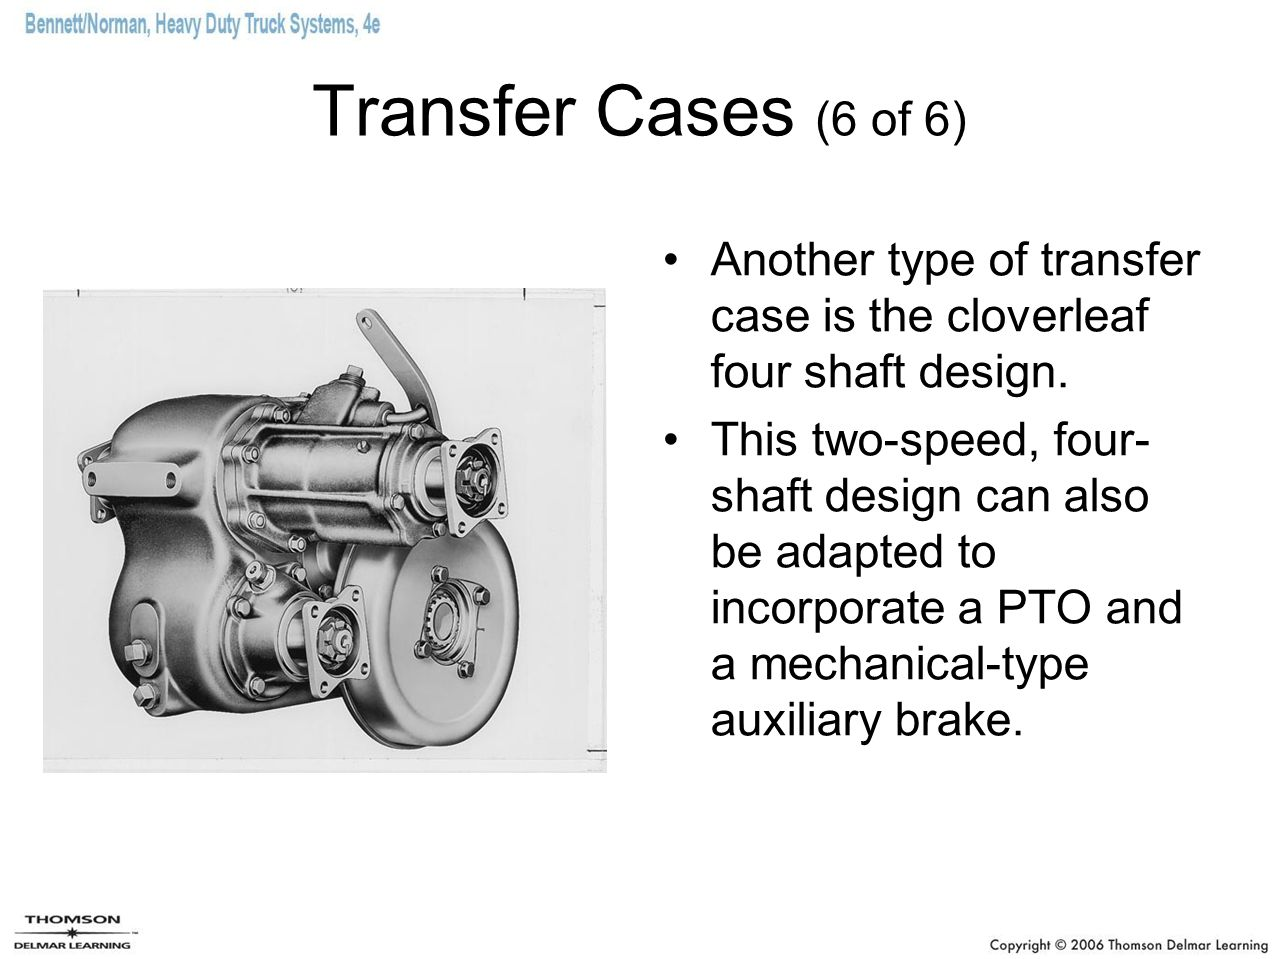 Transfer Cases (6 of 6) Another type of transfer case is the cloverleaf four shaft design.